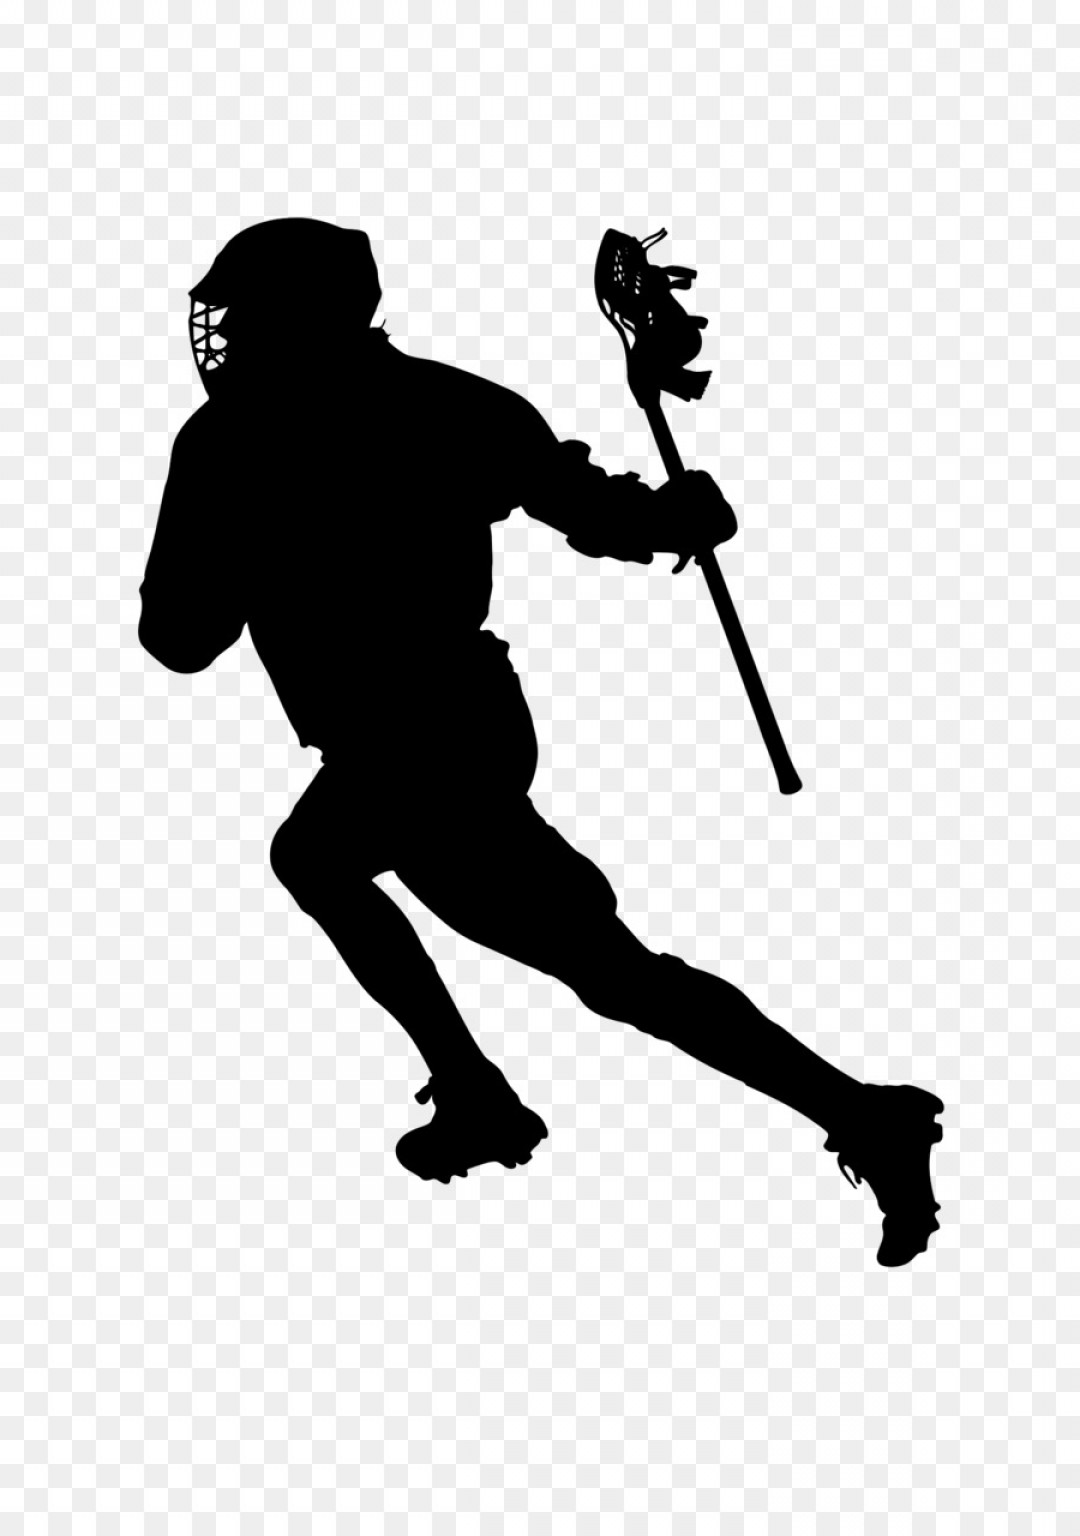 Lacrosse Stick Vector: Png Lacrosse Stick Silhouette Scalable Vector Graphics